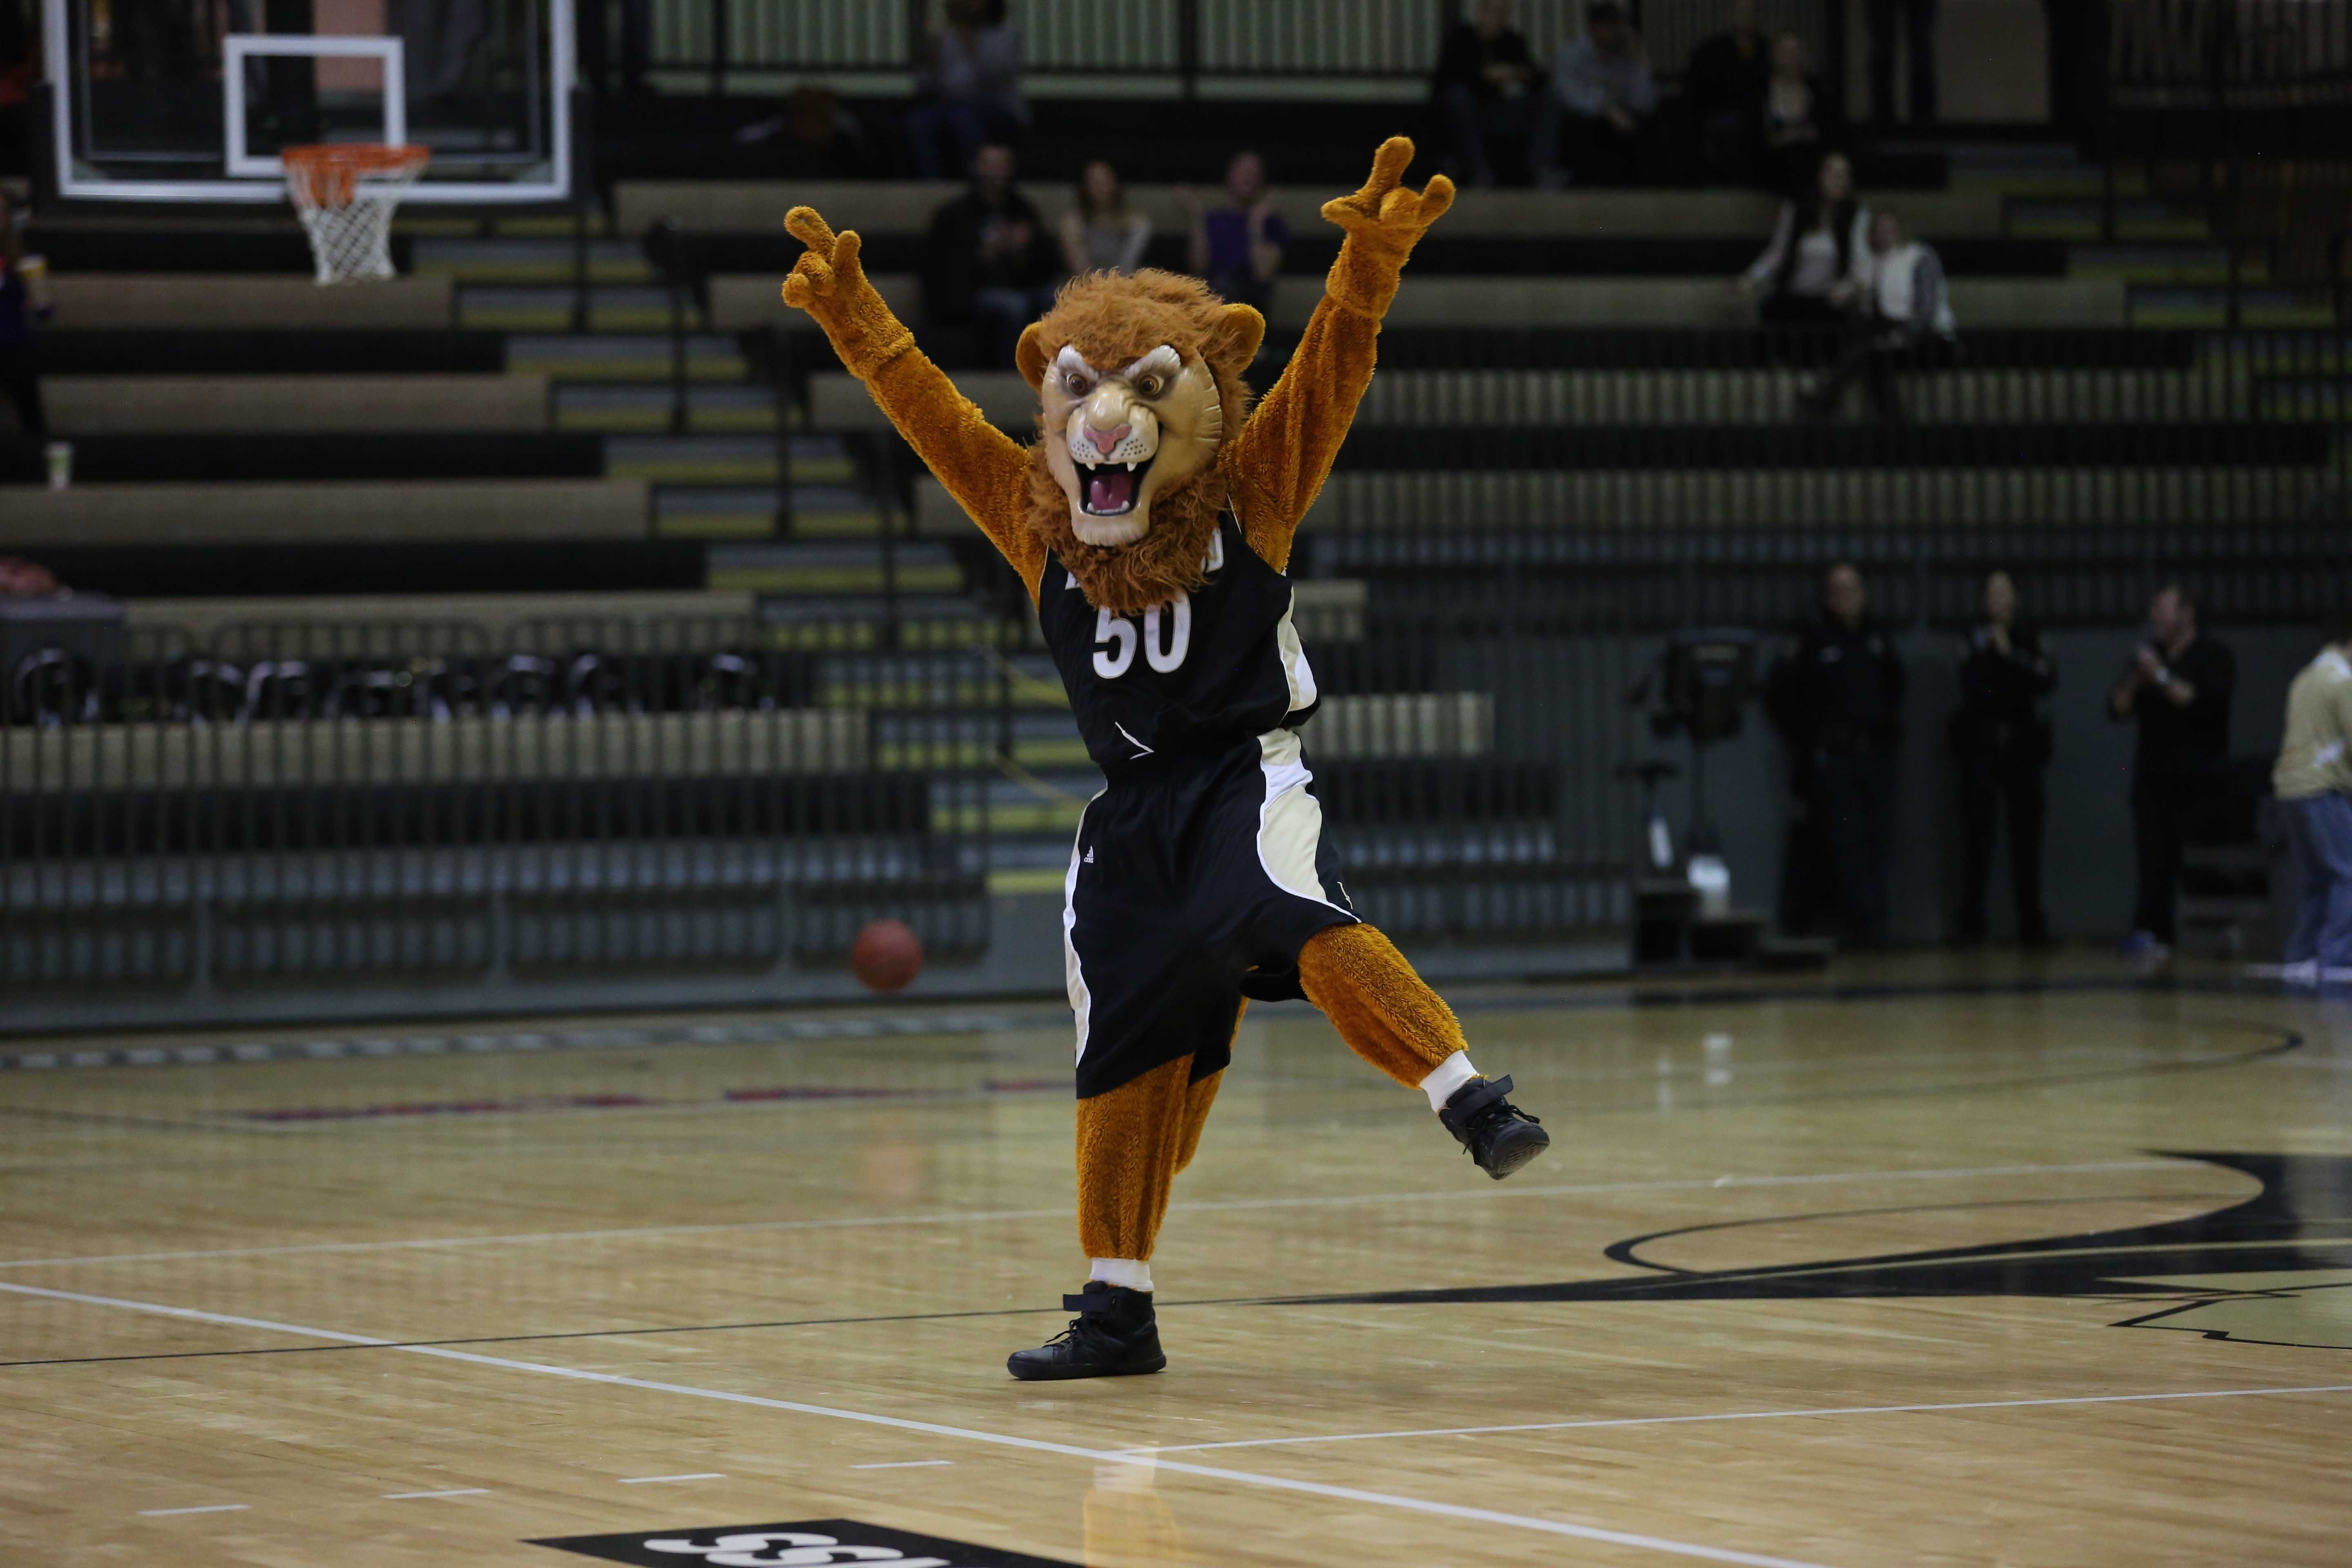 Lindenwood's mascot, Leo the lion celebrates after making a shot during halftime at the Jan. 15 game.